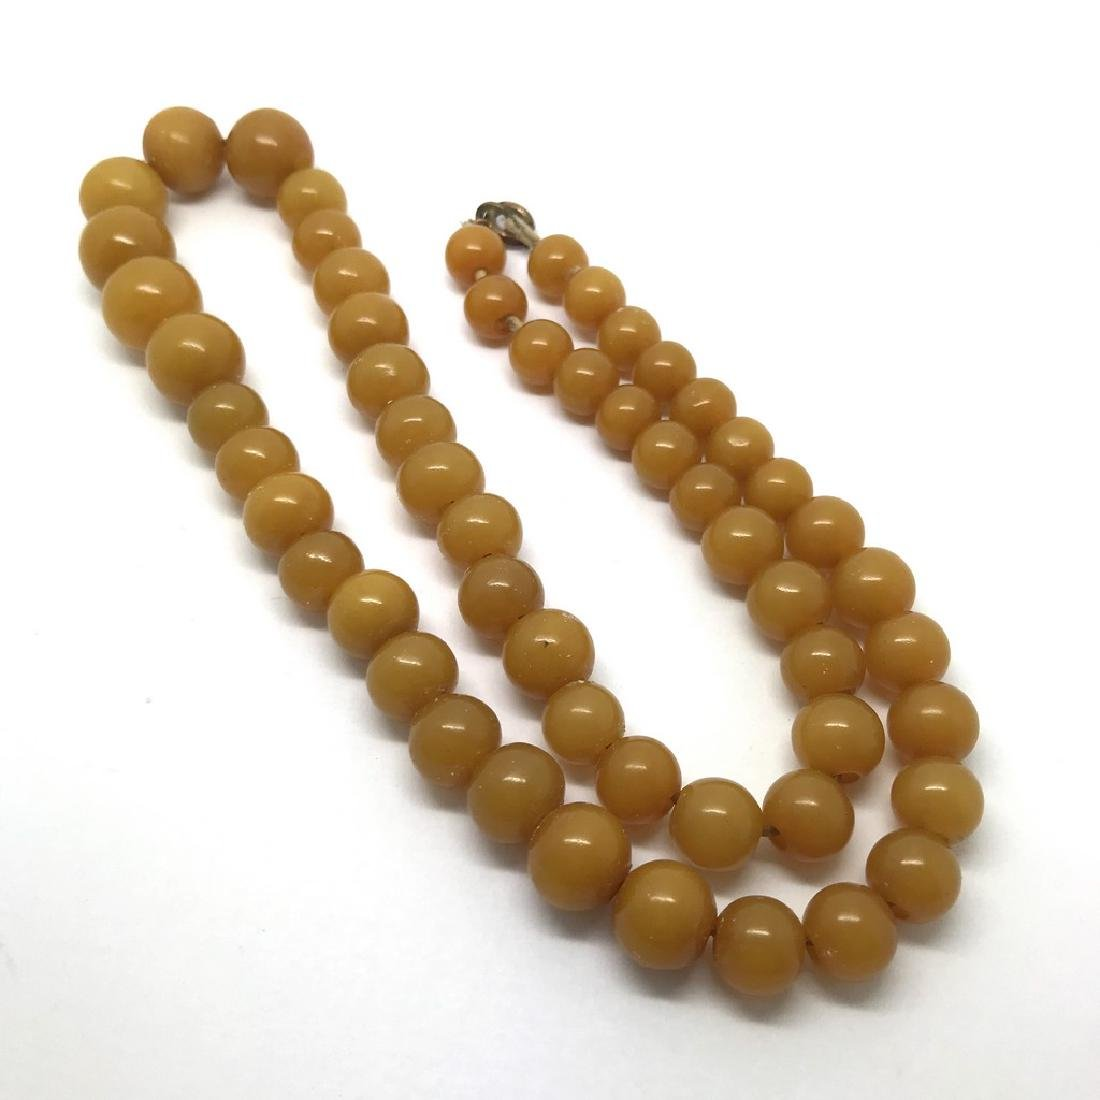 Antique necklace toffee amber design bakelite beads - 2